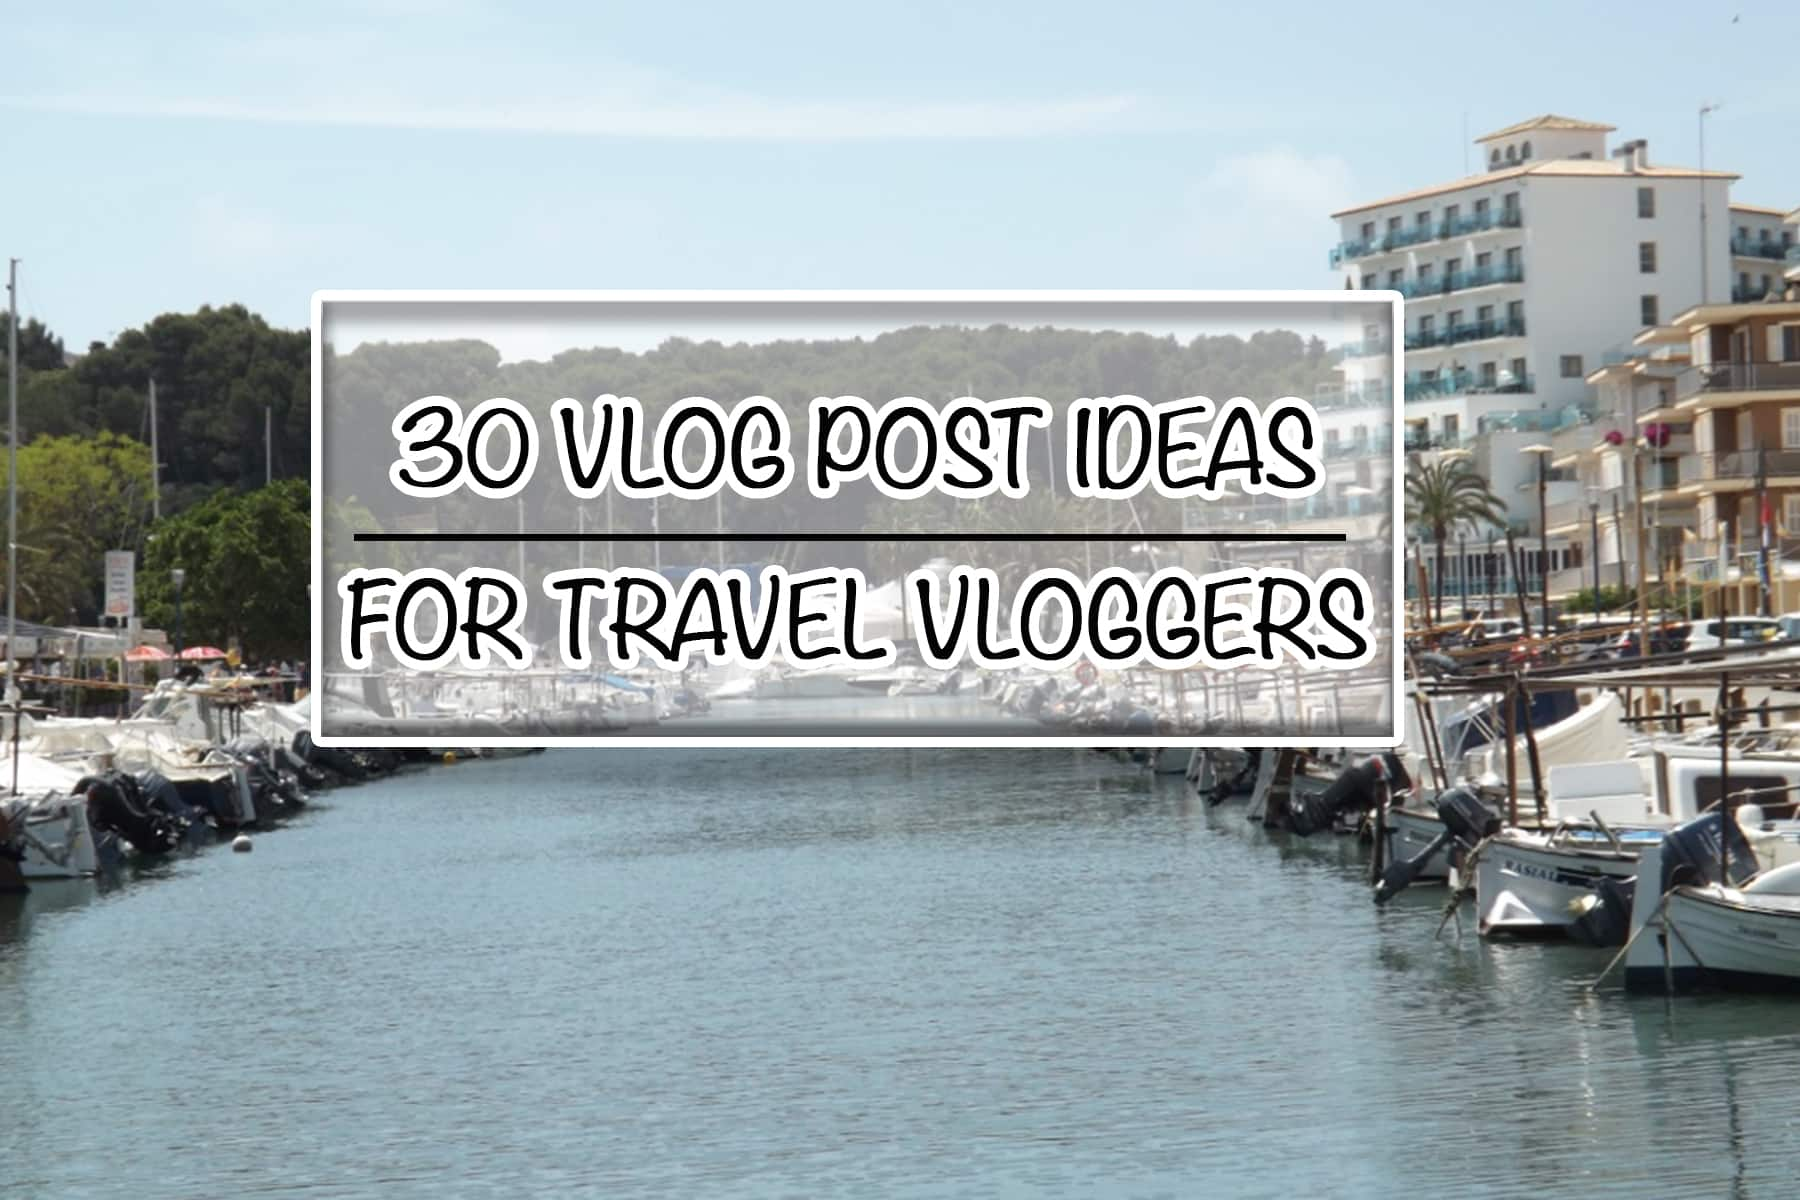 30 Vlog Post Ideas for Travel Vloggers - One Epic Road Trip Blog